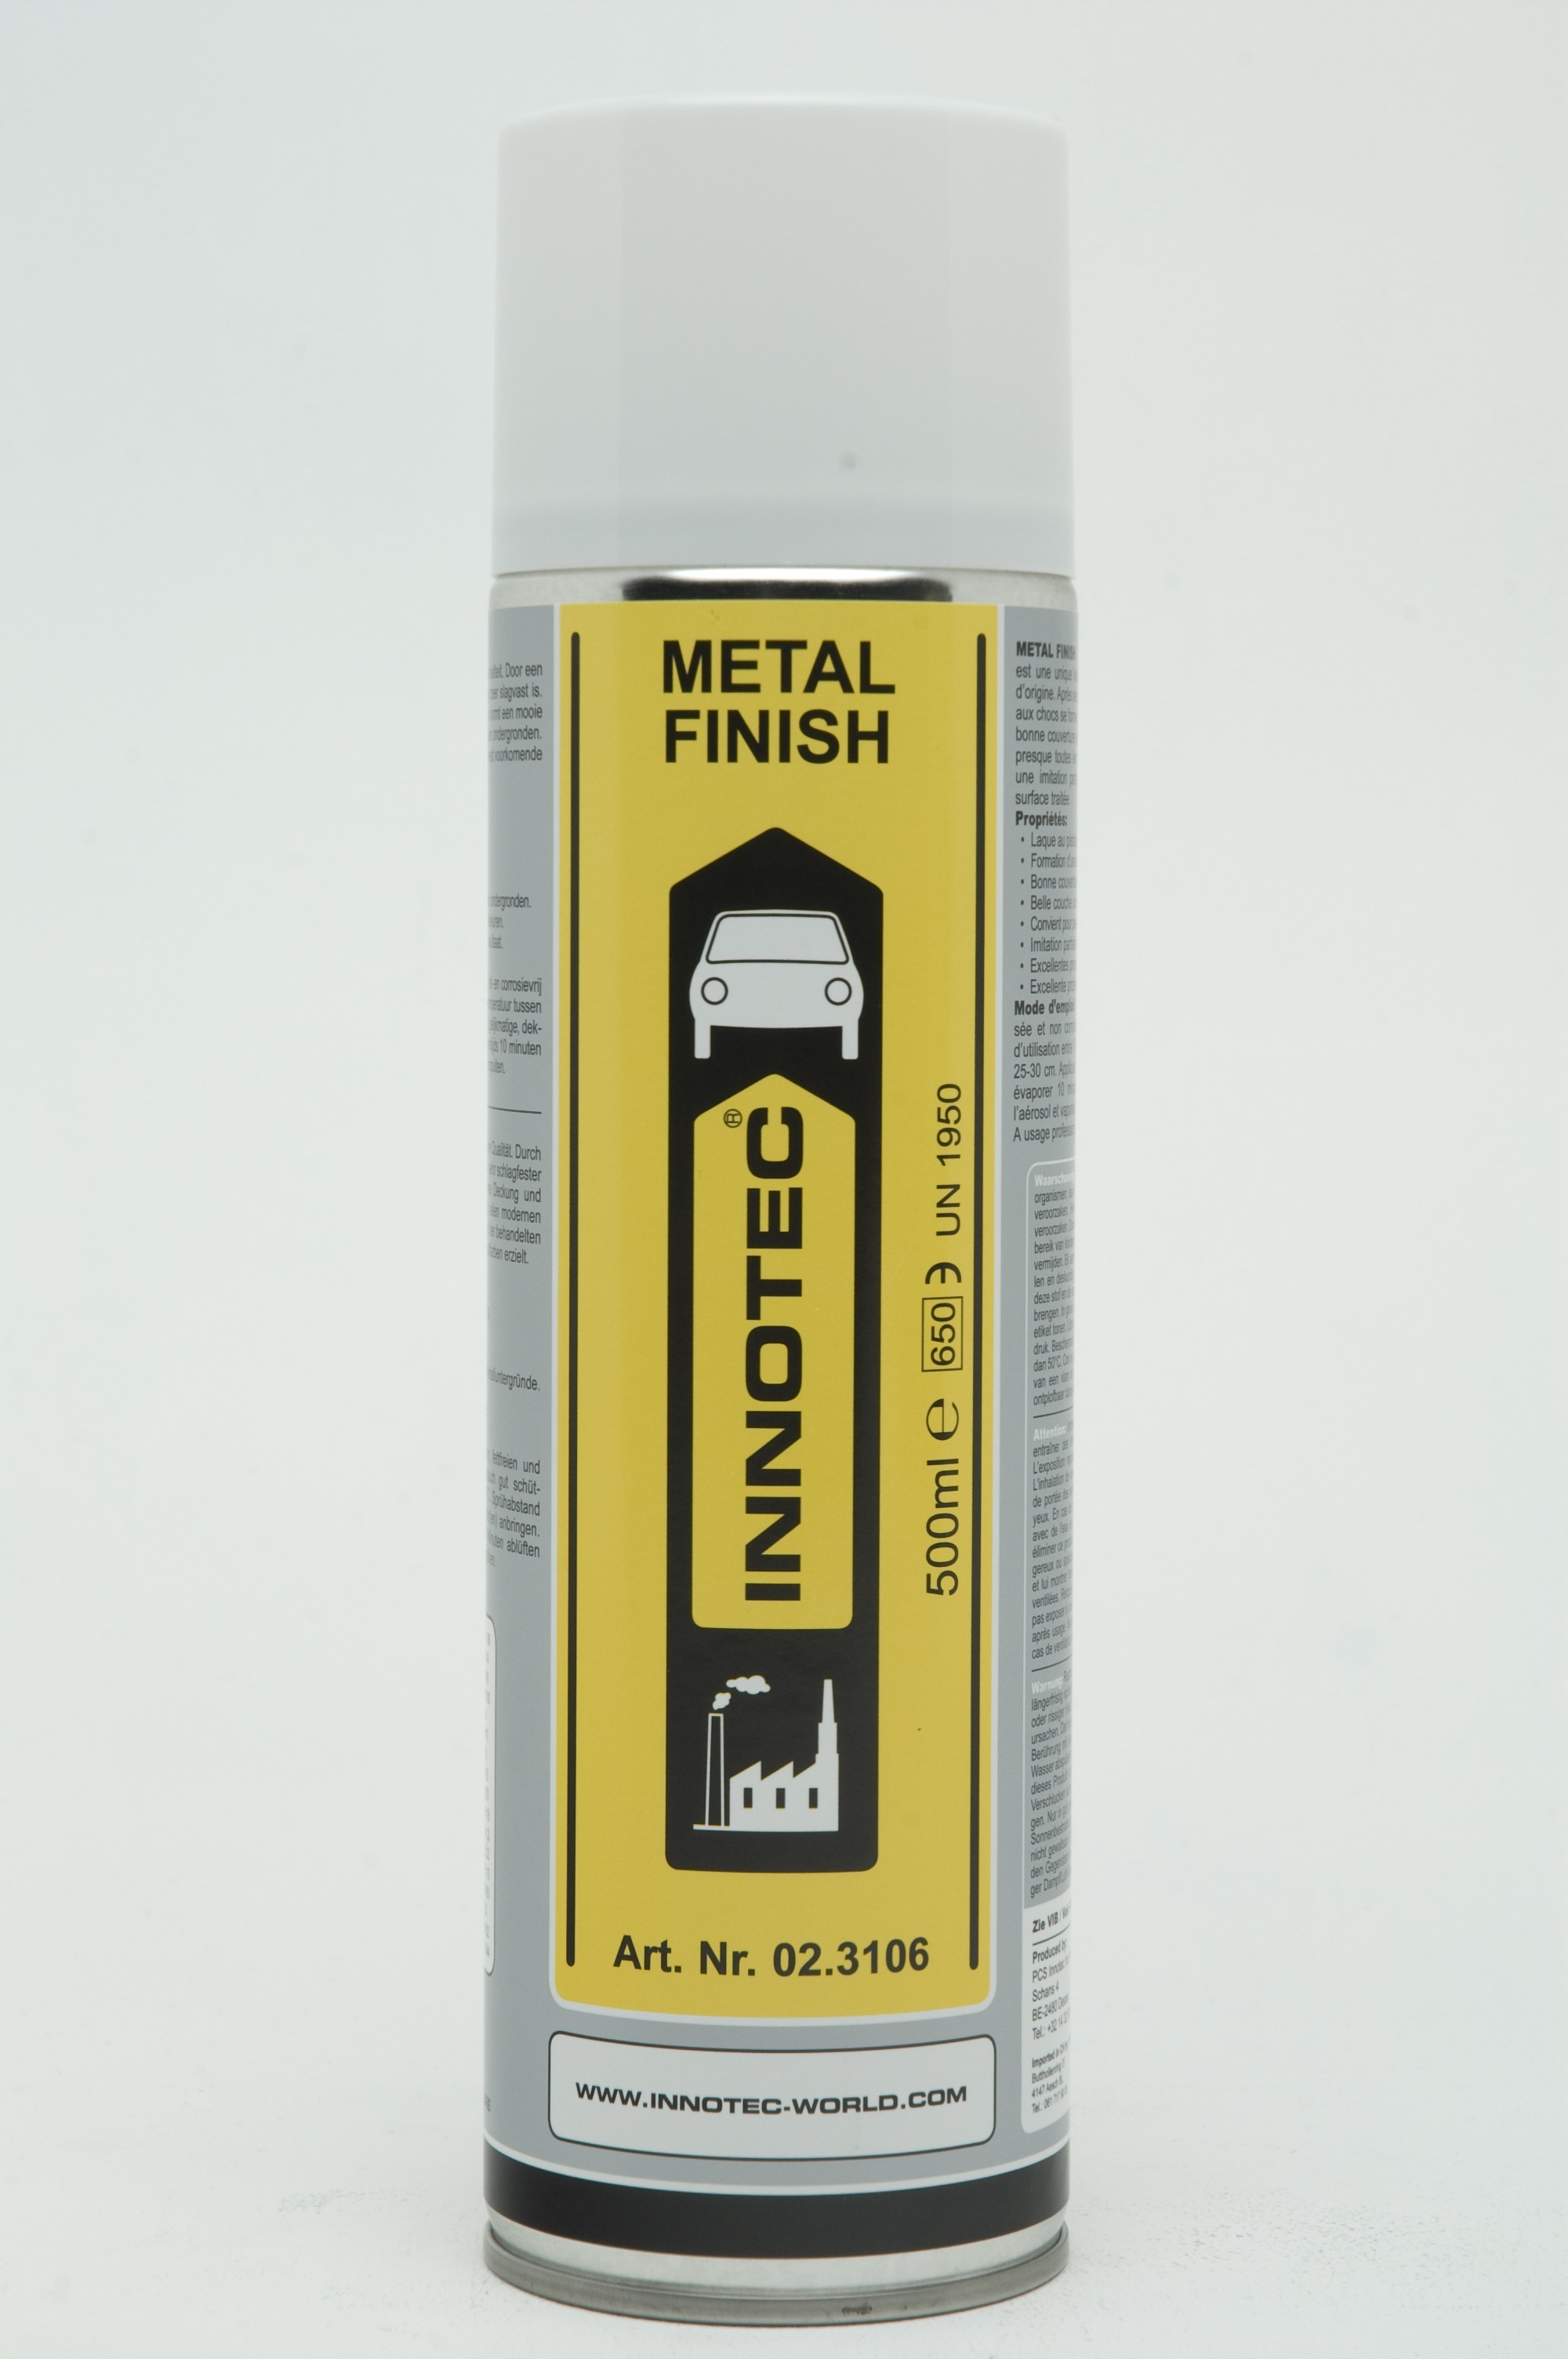 METAL FINISH-PEINTURE METAL 500ML